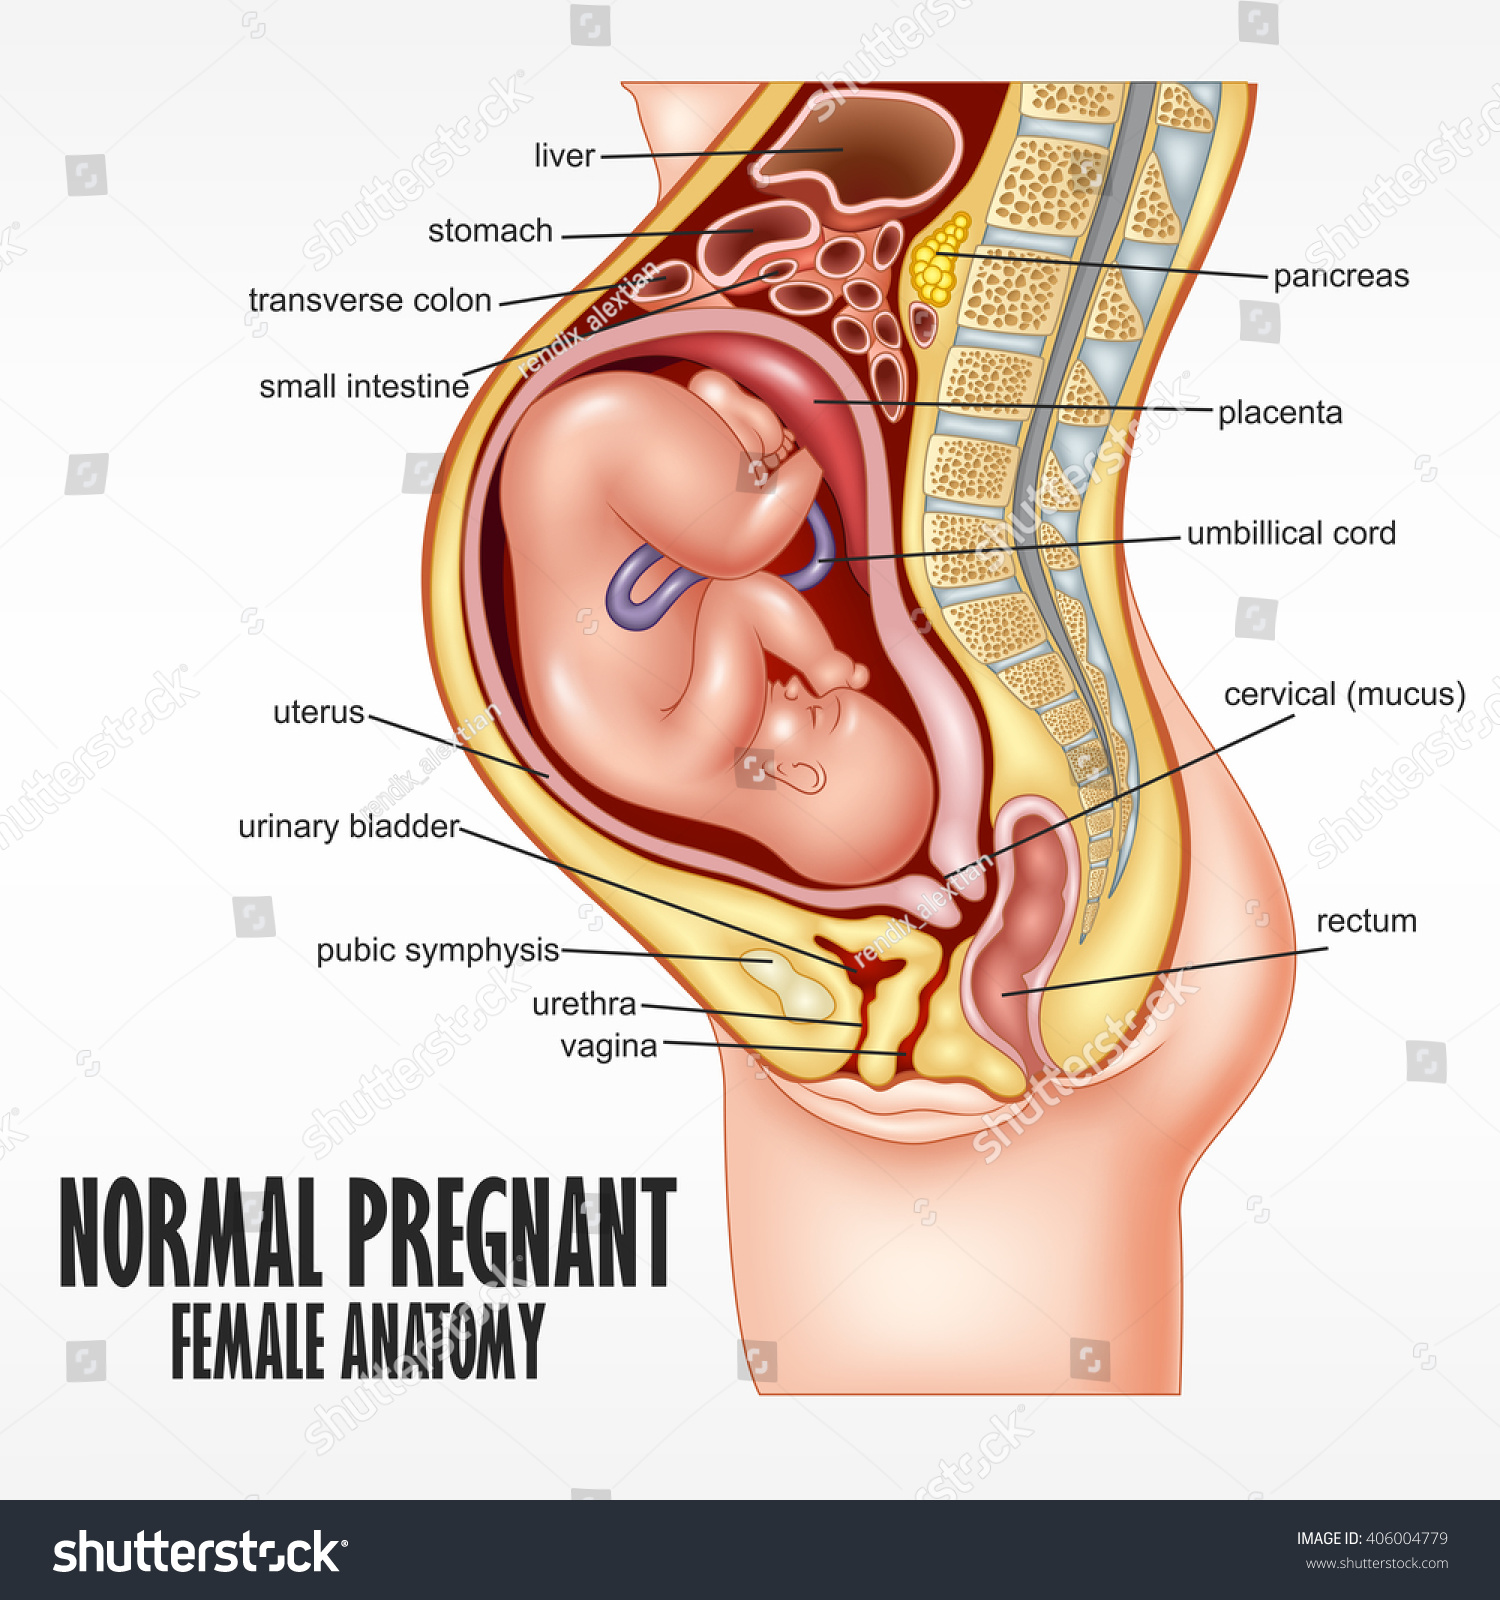 normal pregnant female anatomy stock vector illustration